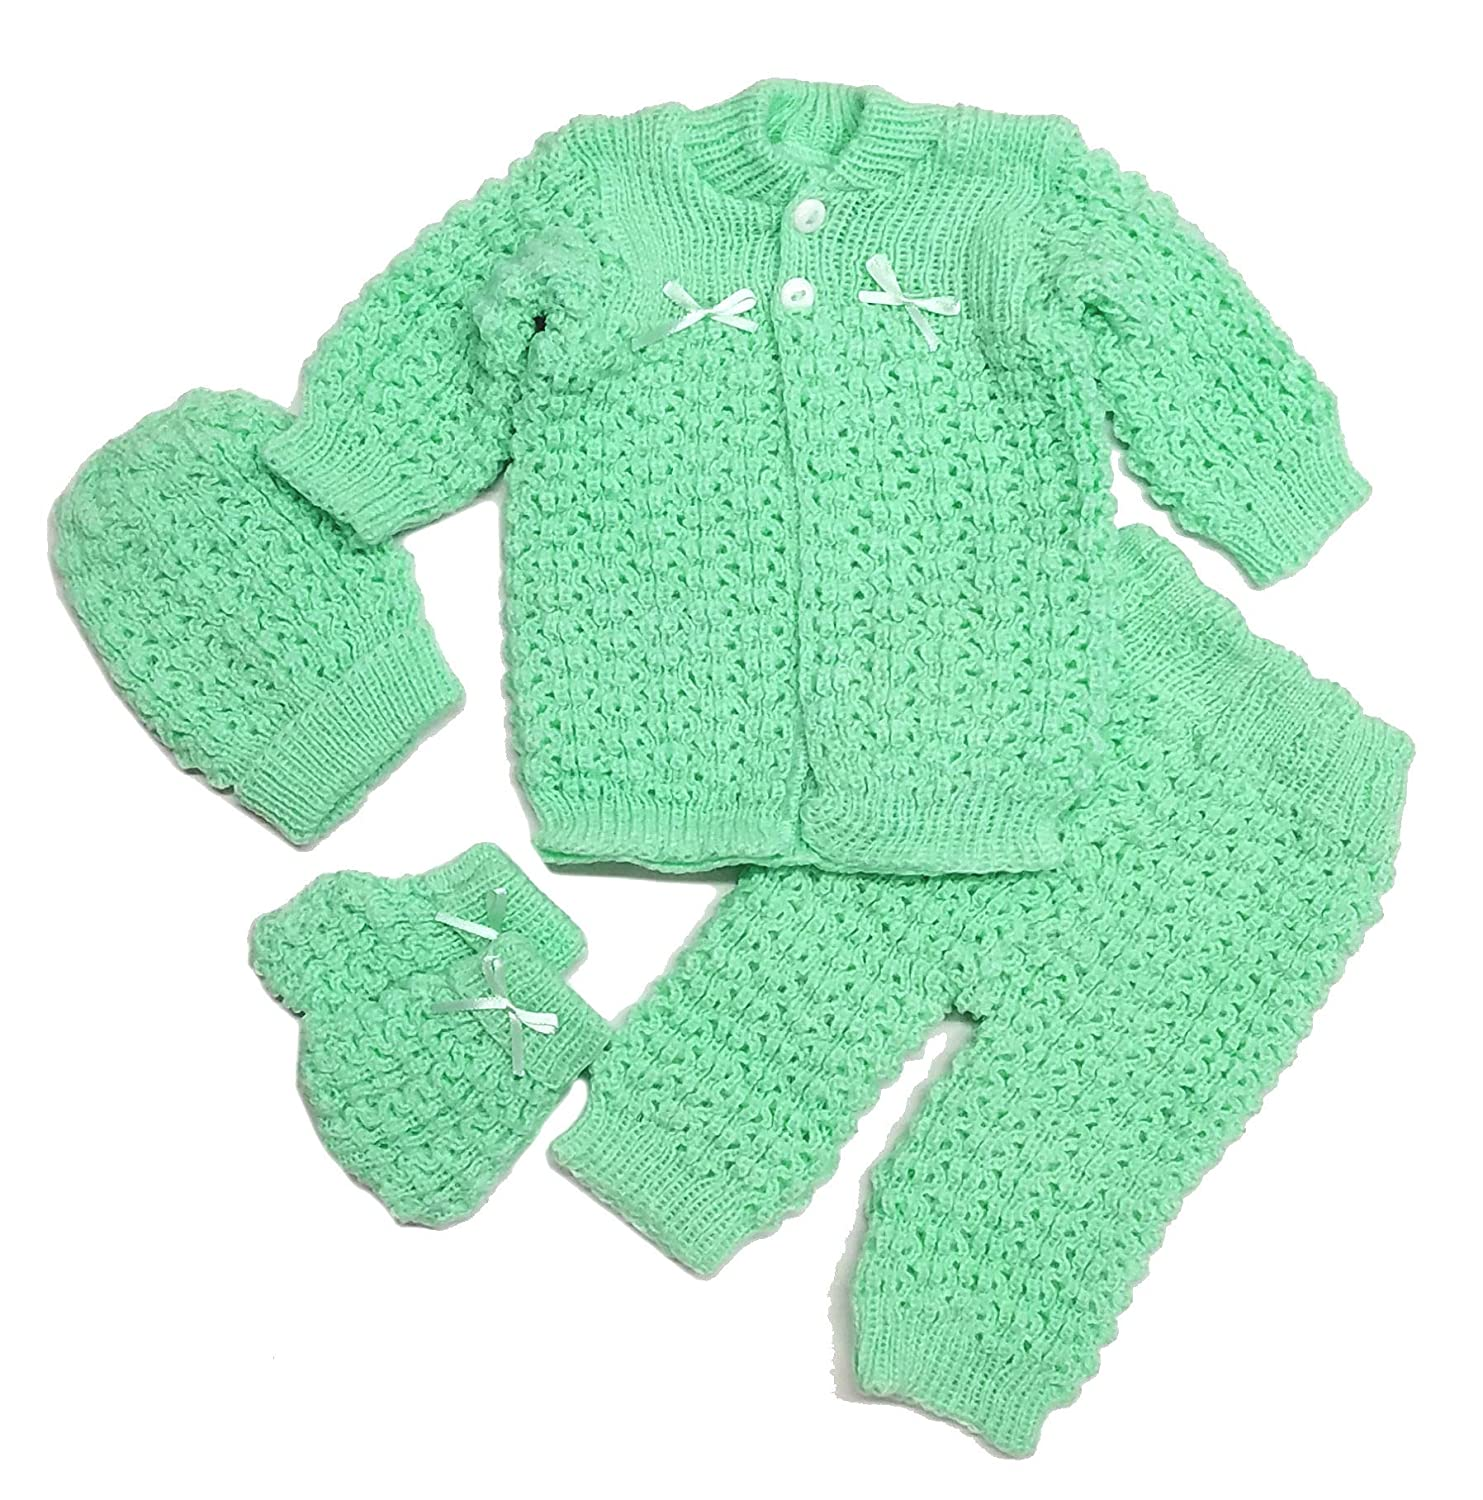 bf684fe44 Amazon.com: Abelito Baby's Four Piece Crochet Outfit Set One Size Blue:  Clothing